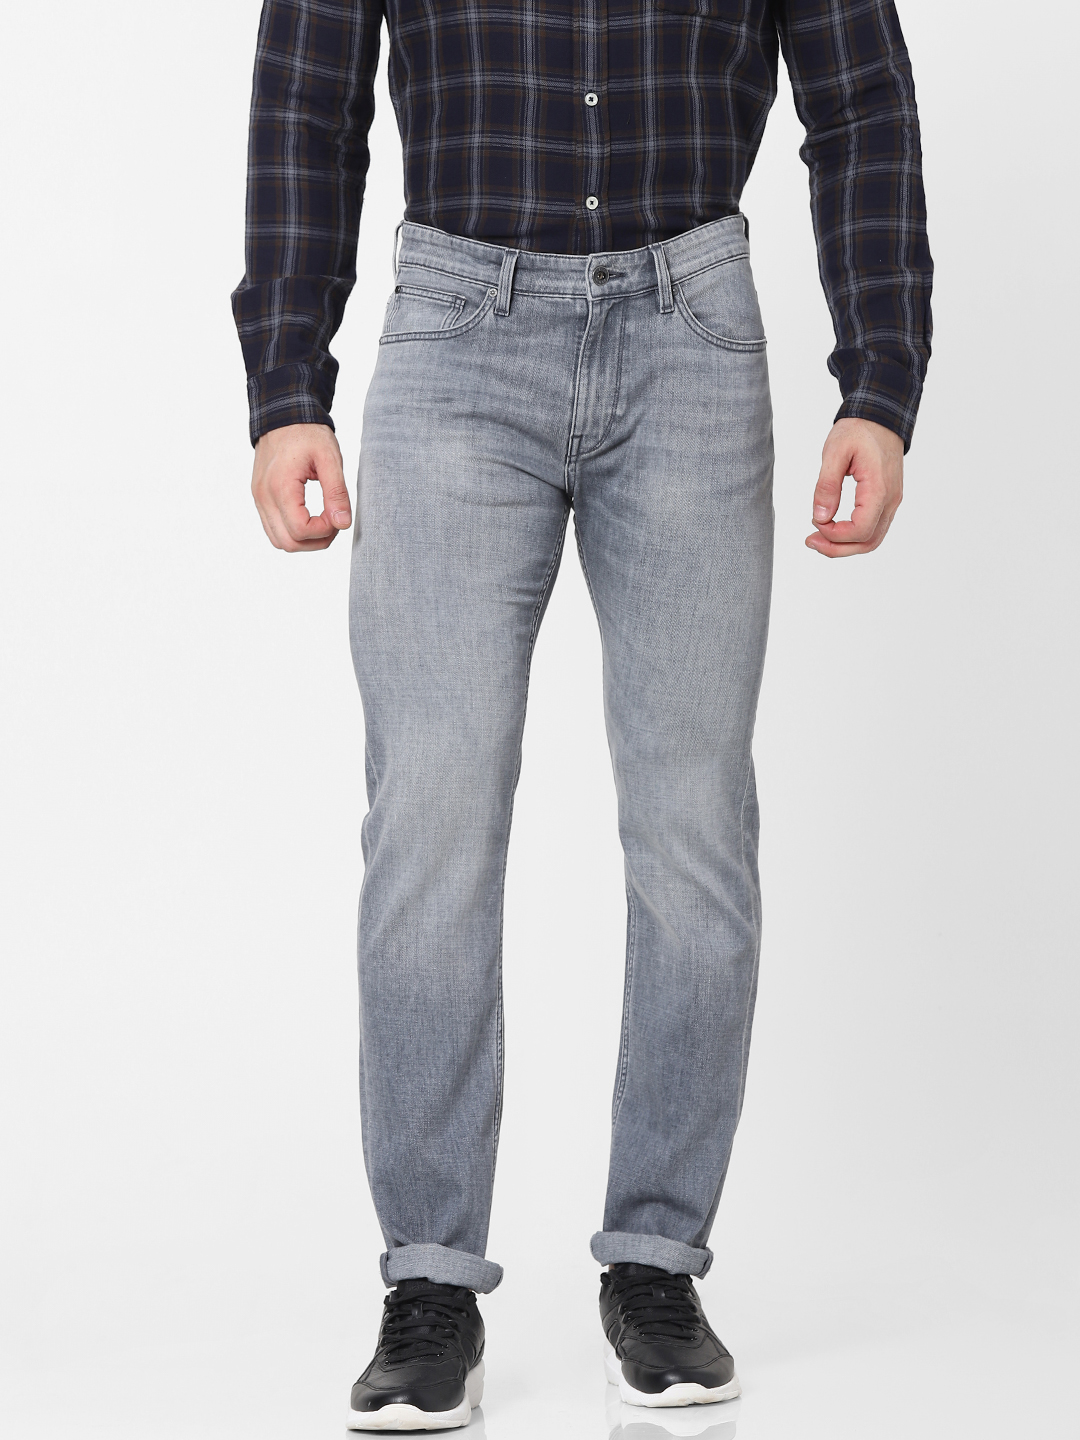 celio | Soft Touch Double Stone Washed Jeans